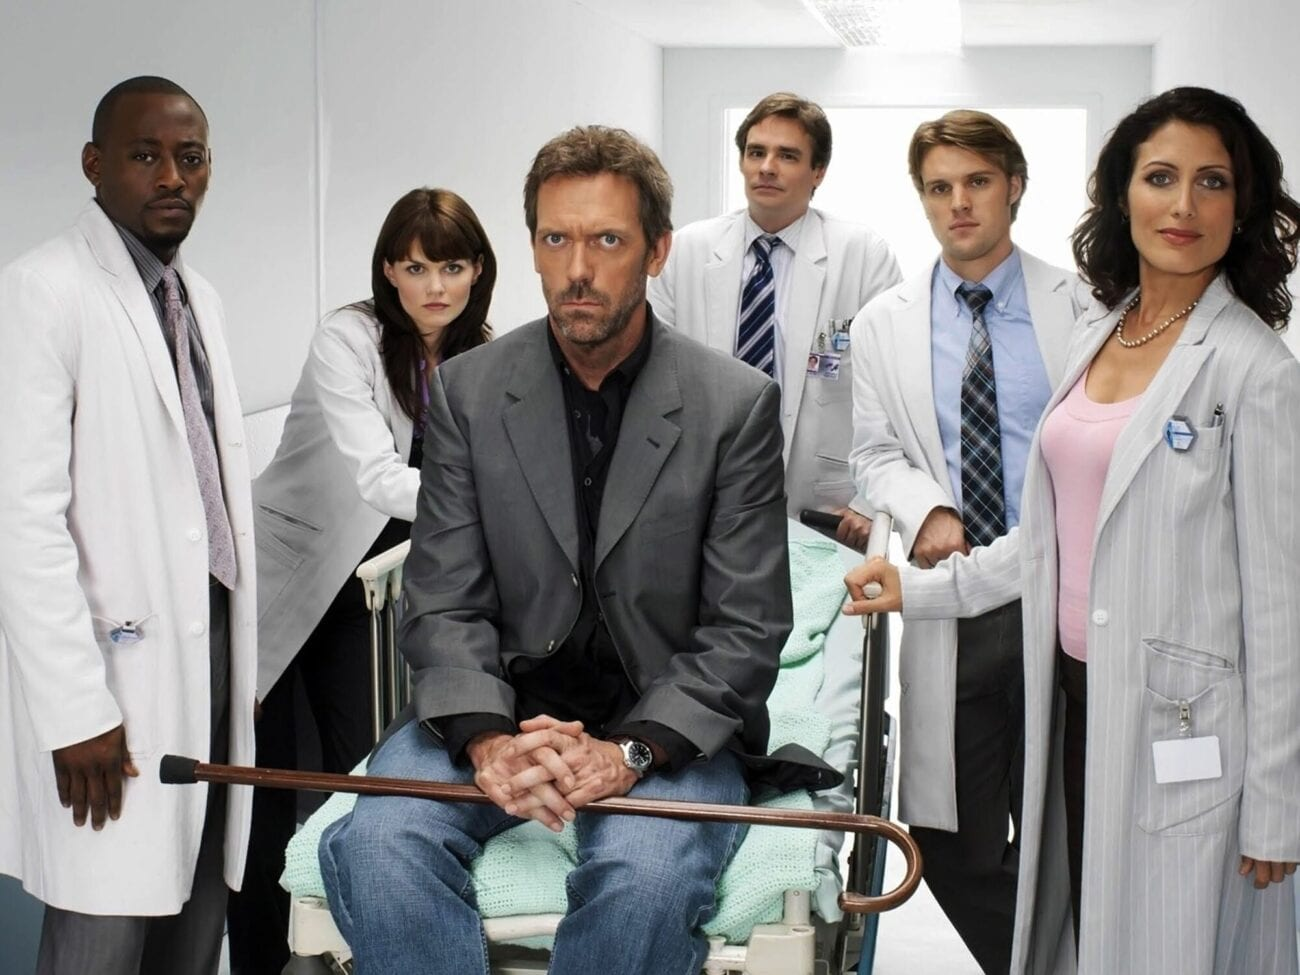 Have you run out of medical dramas to binge-watch? Are you still crying over 'House MD'? Here's why we need the TV show to make another season.